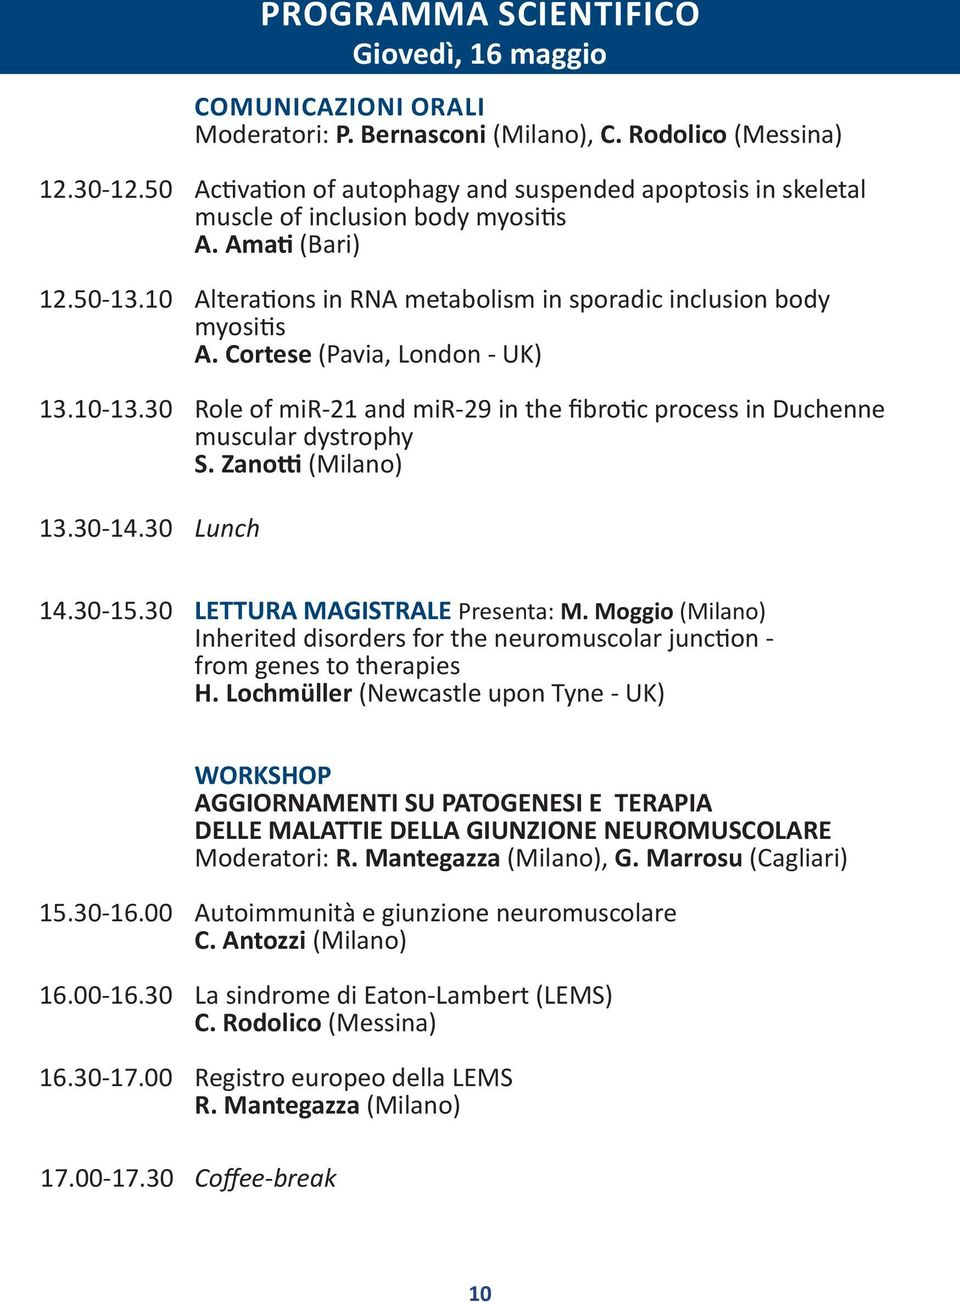 Cortese (Pavia, London - UK) 13.10-13.30 Role of mir-21 and mir-29 in the fibrotic process in Duchenne muscular dystrophy S. Zanotti (Milano) 13.30-14.30 Lunch 14.30-15.